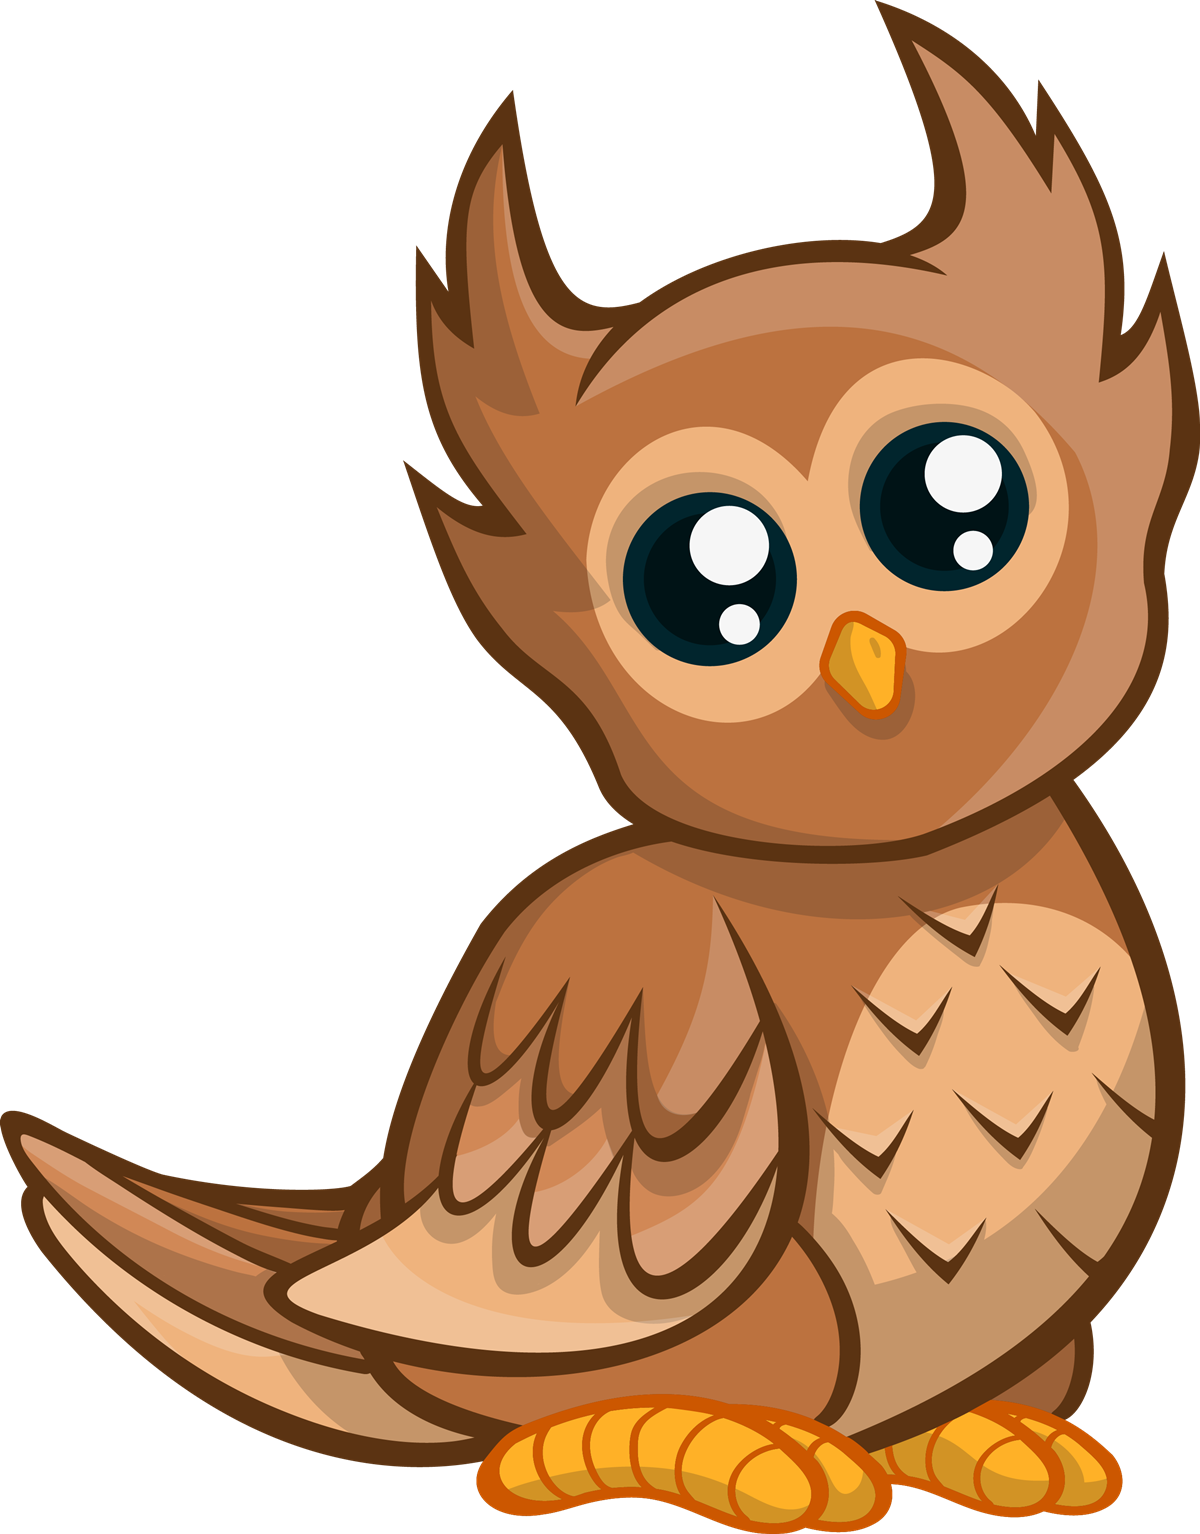 Owl Free To Use Clip Art.